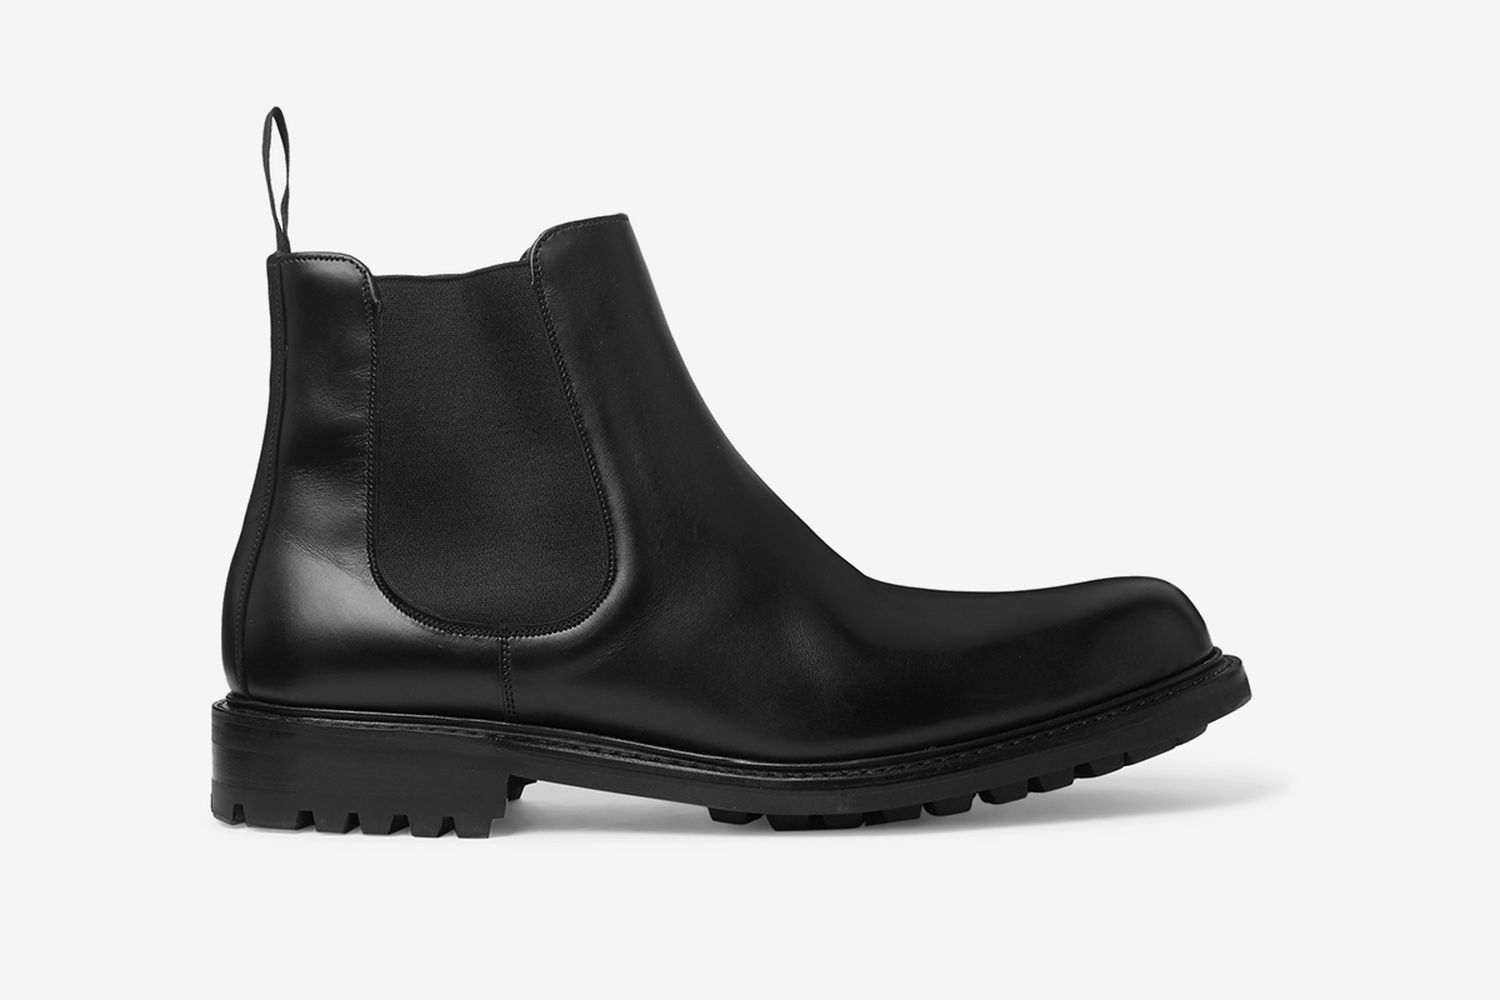 Peter Leather Chelsea Boots